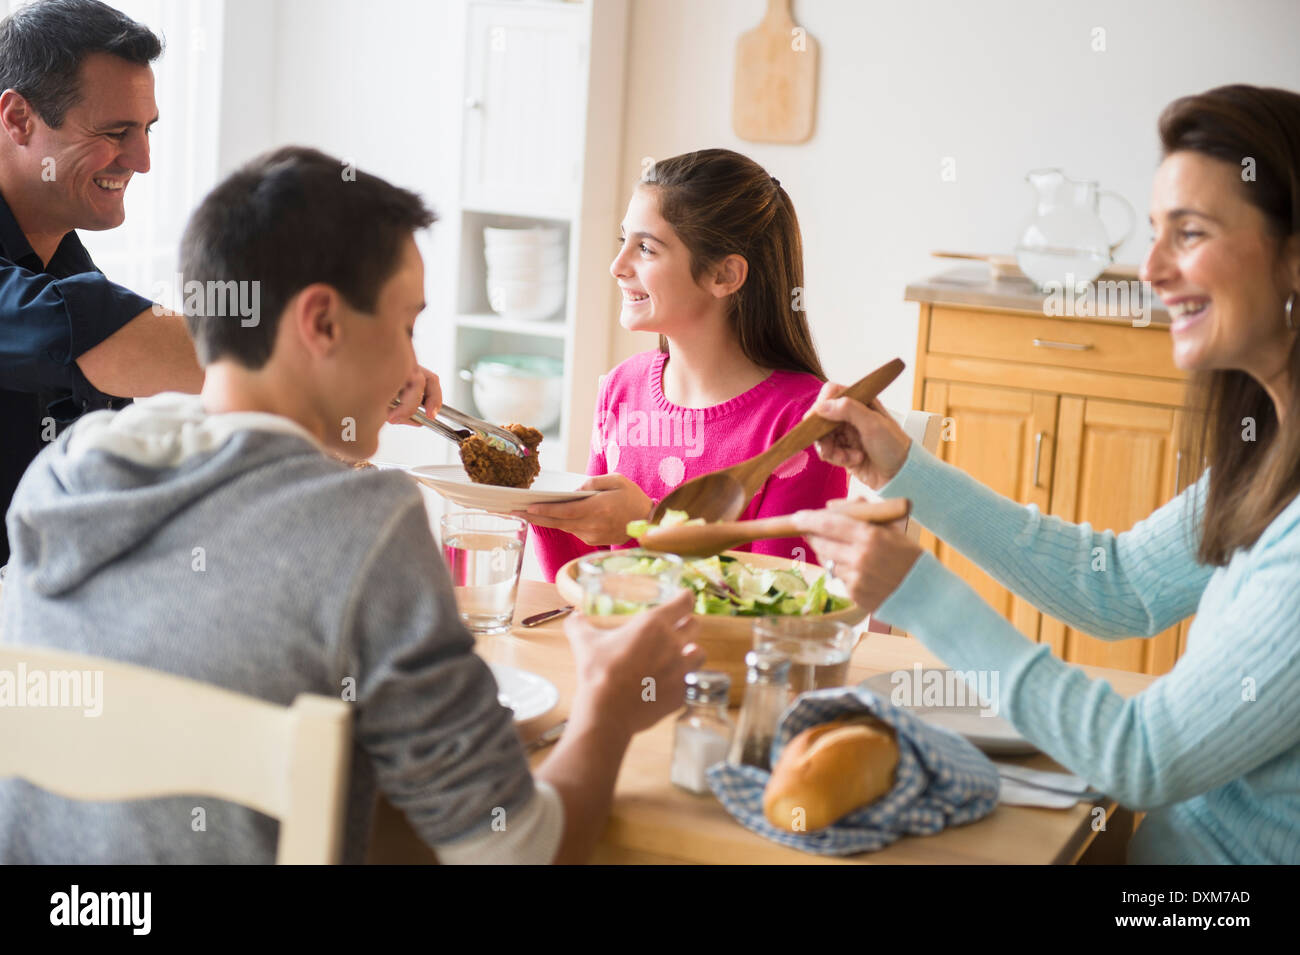 Caucasian family eating at table Banque D'Images